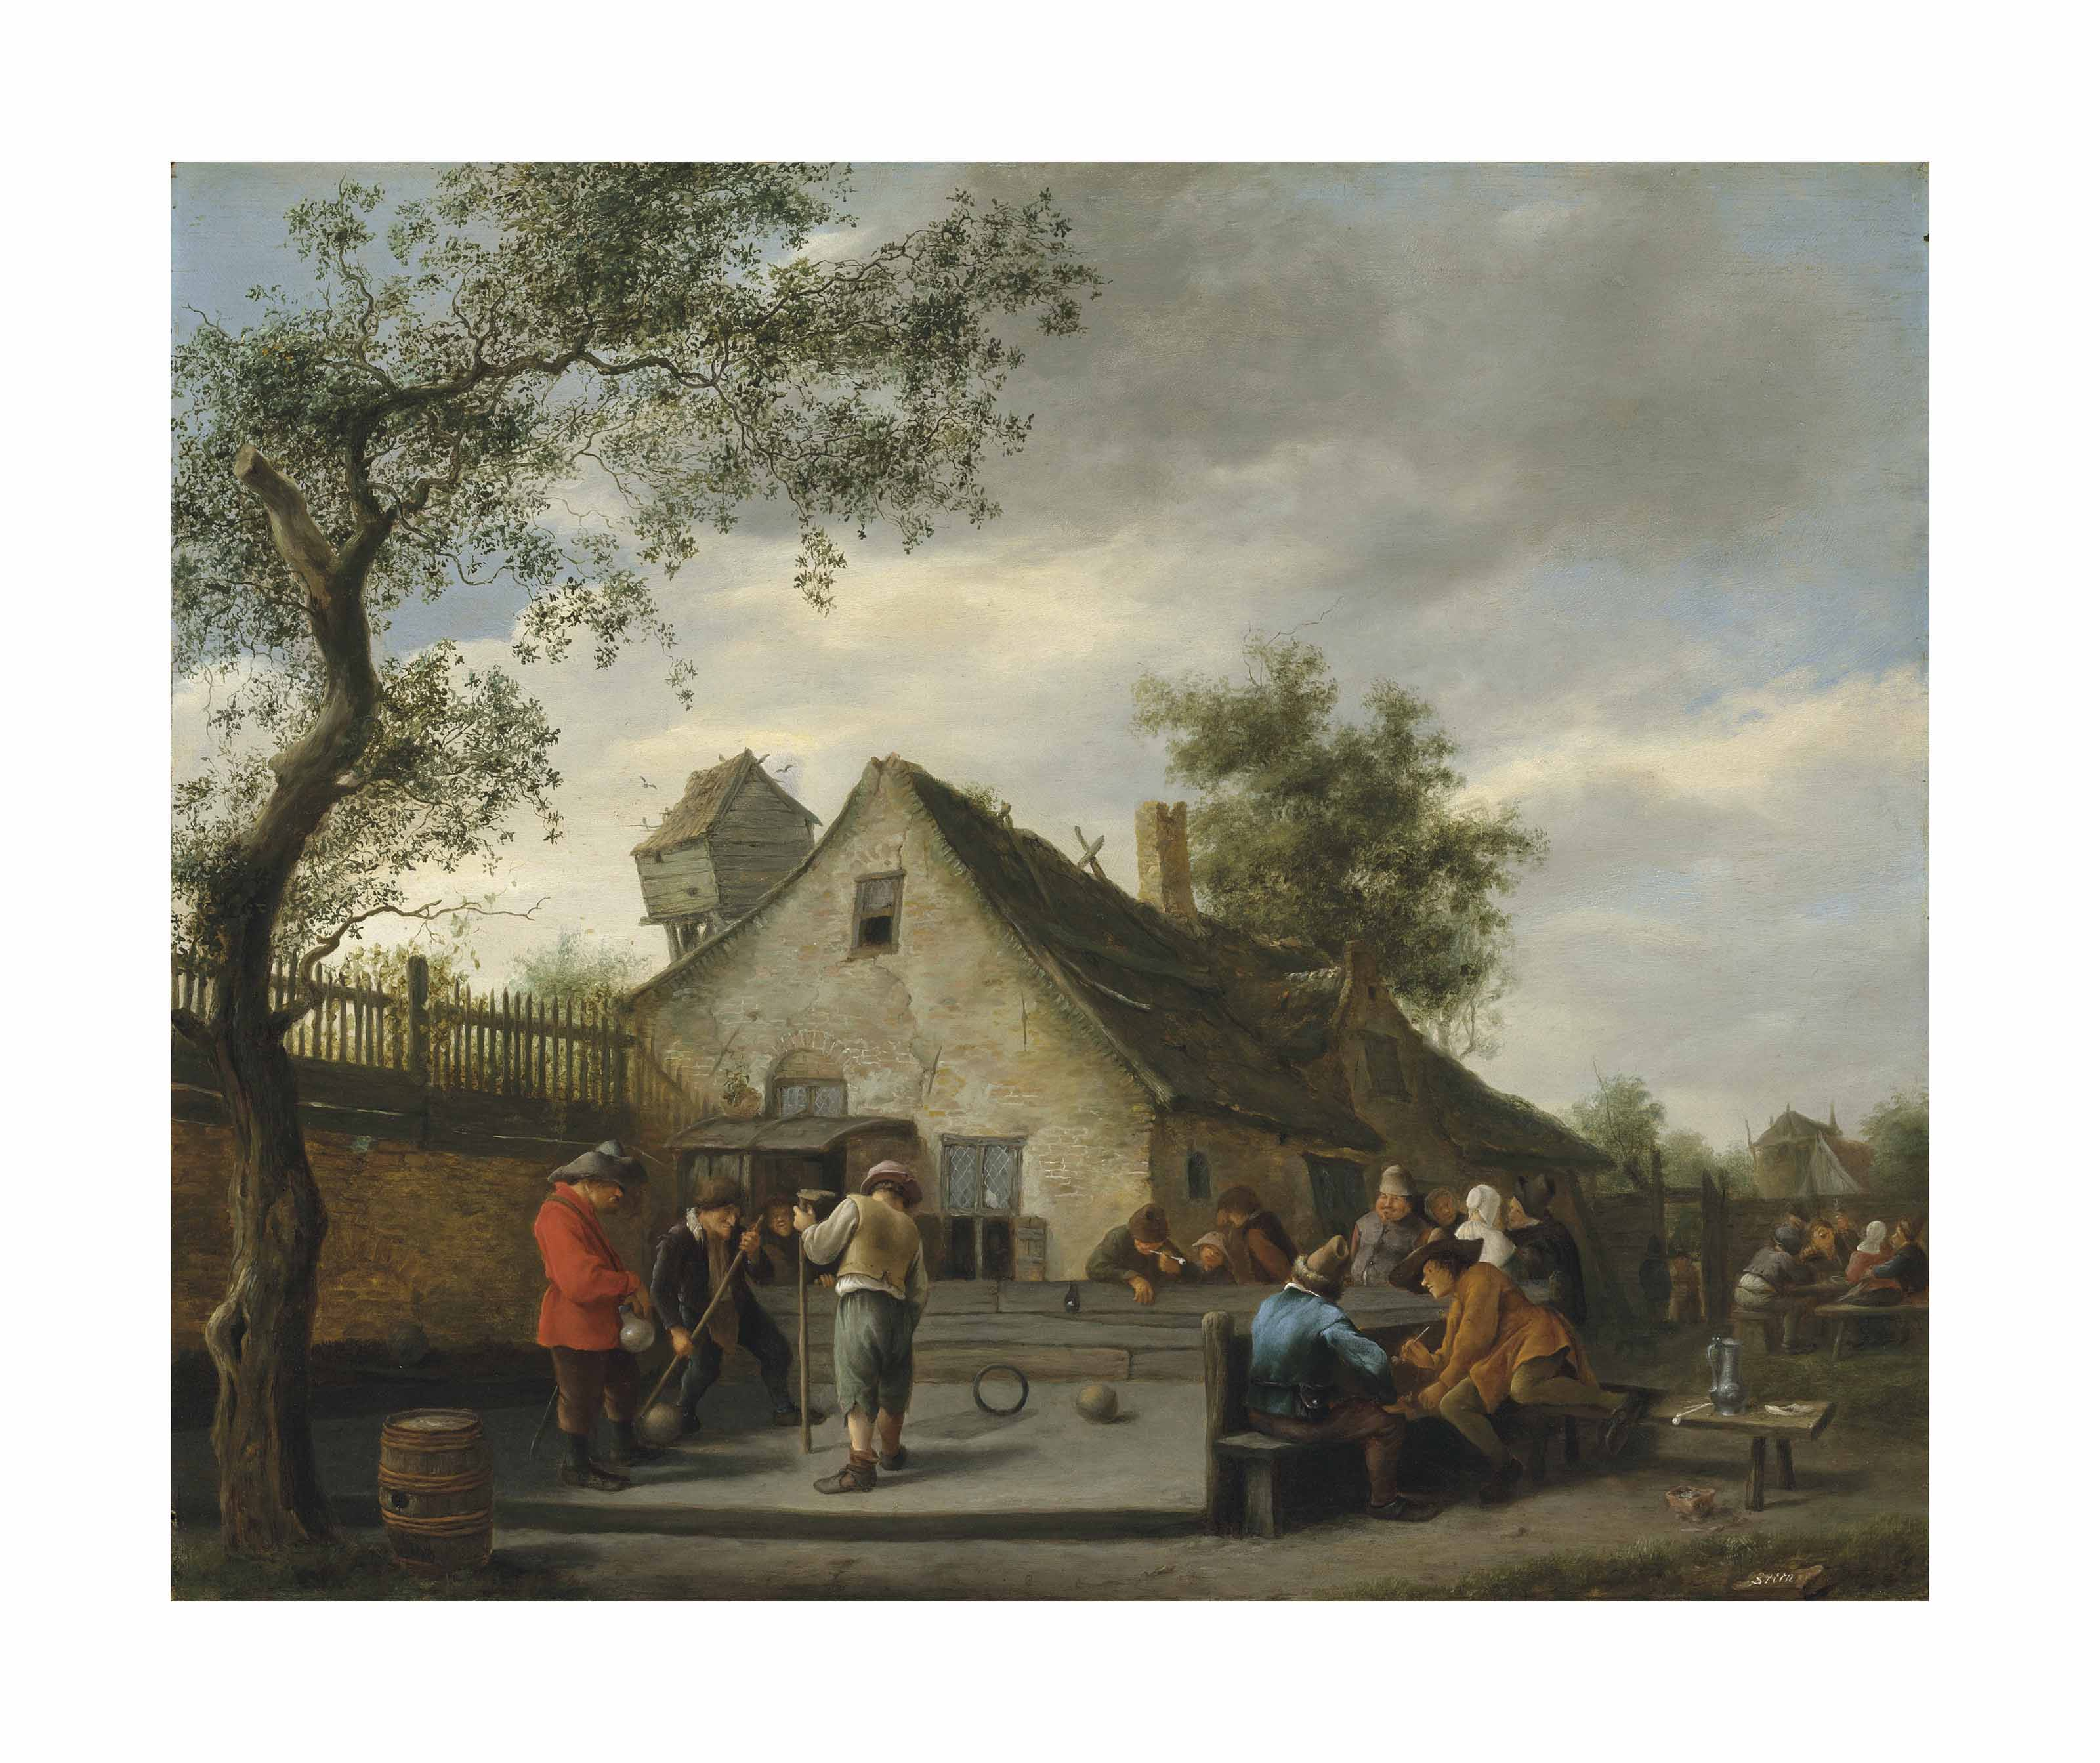 Boors playing a game of beugelen before a country inn, onlookers smoking beyond